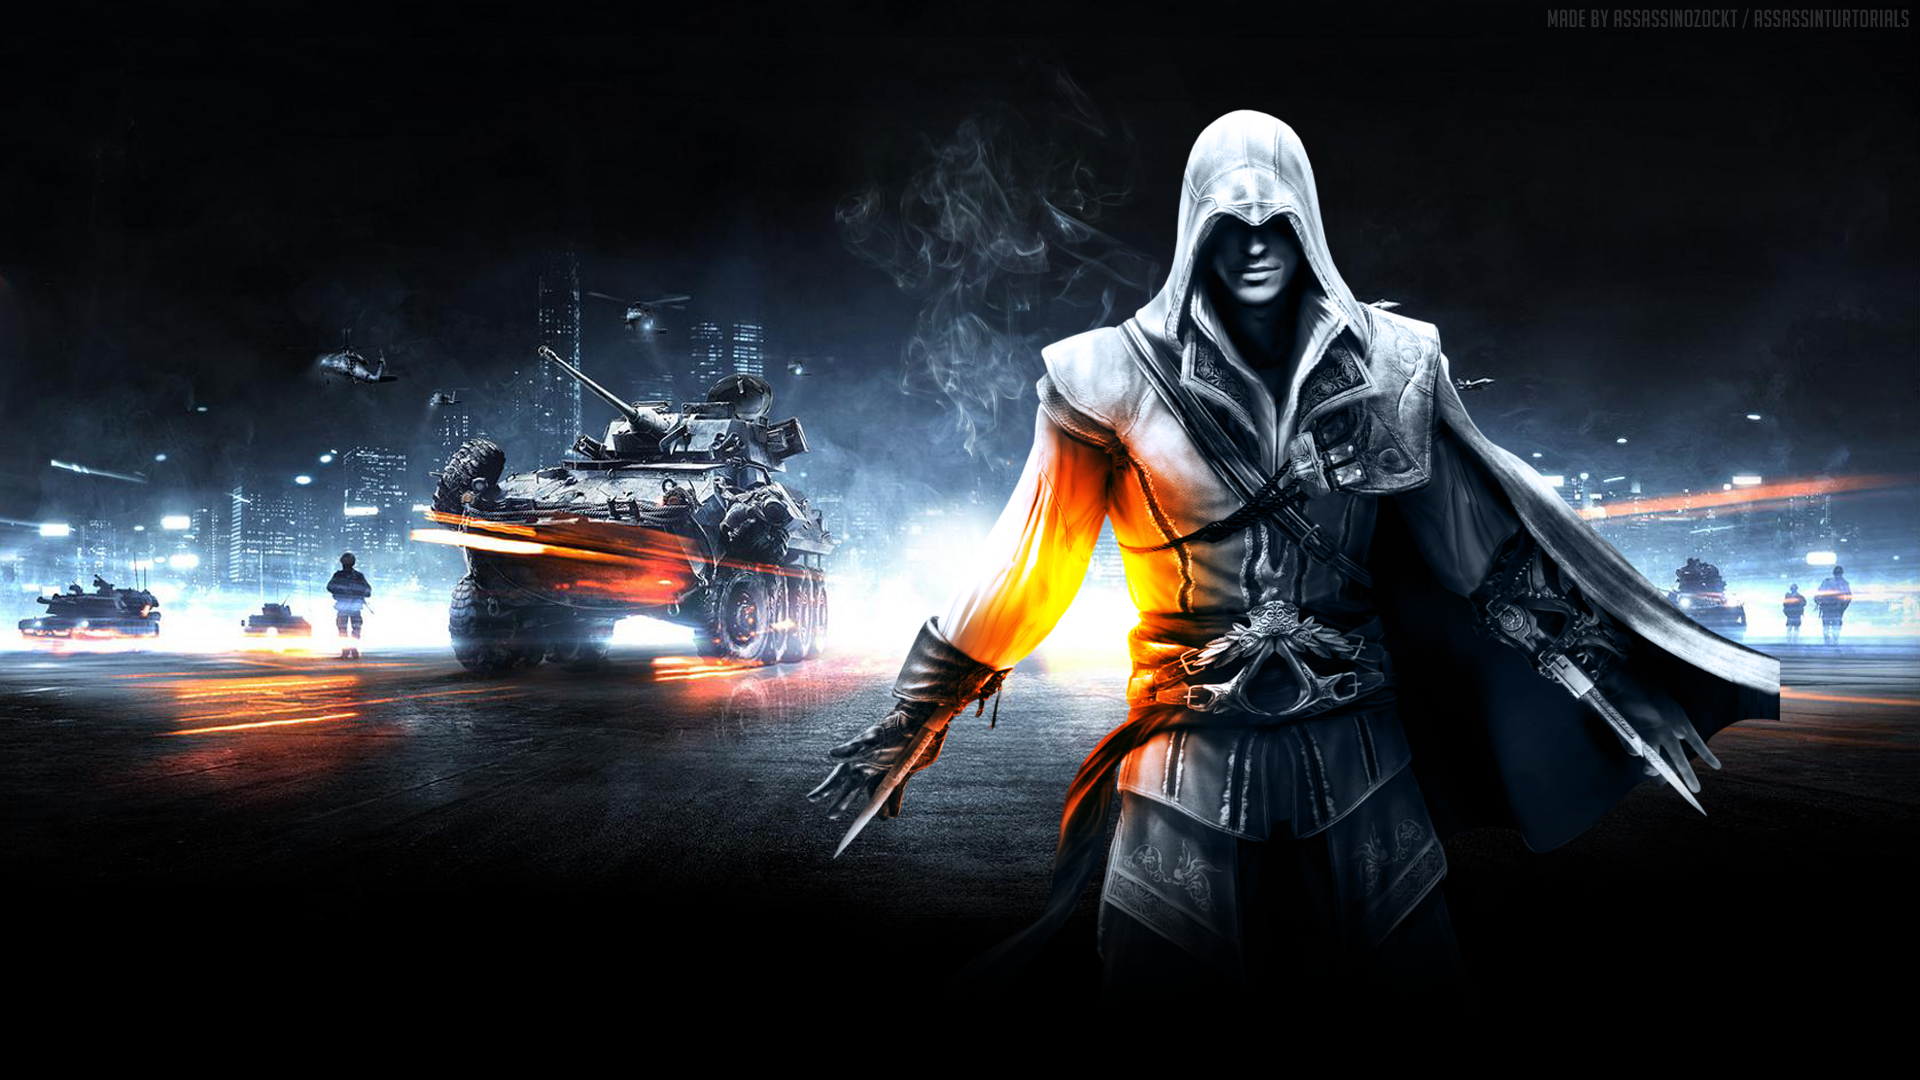 1920X1080 Gaming Wallpapers 1920x1080